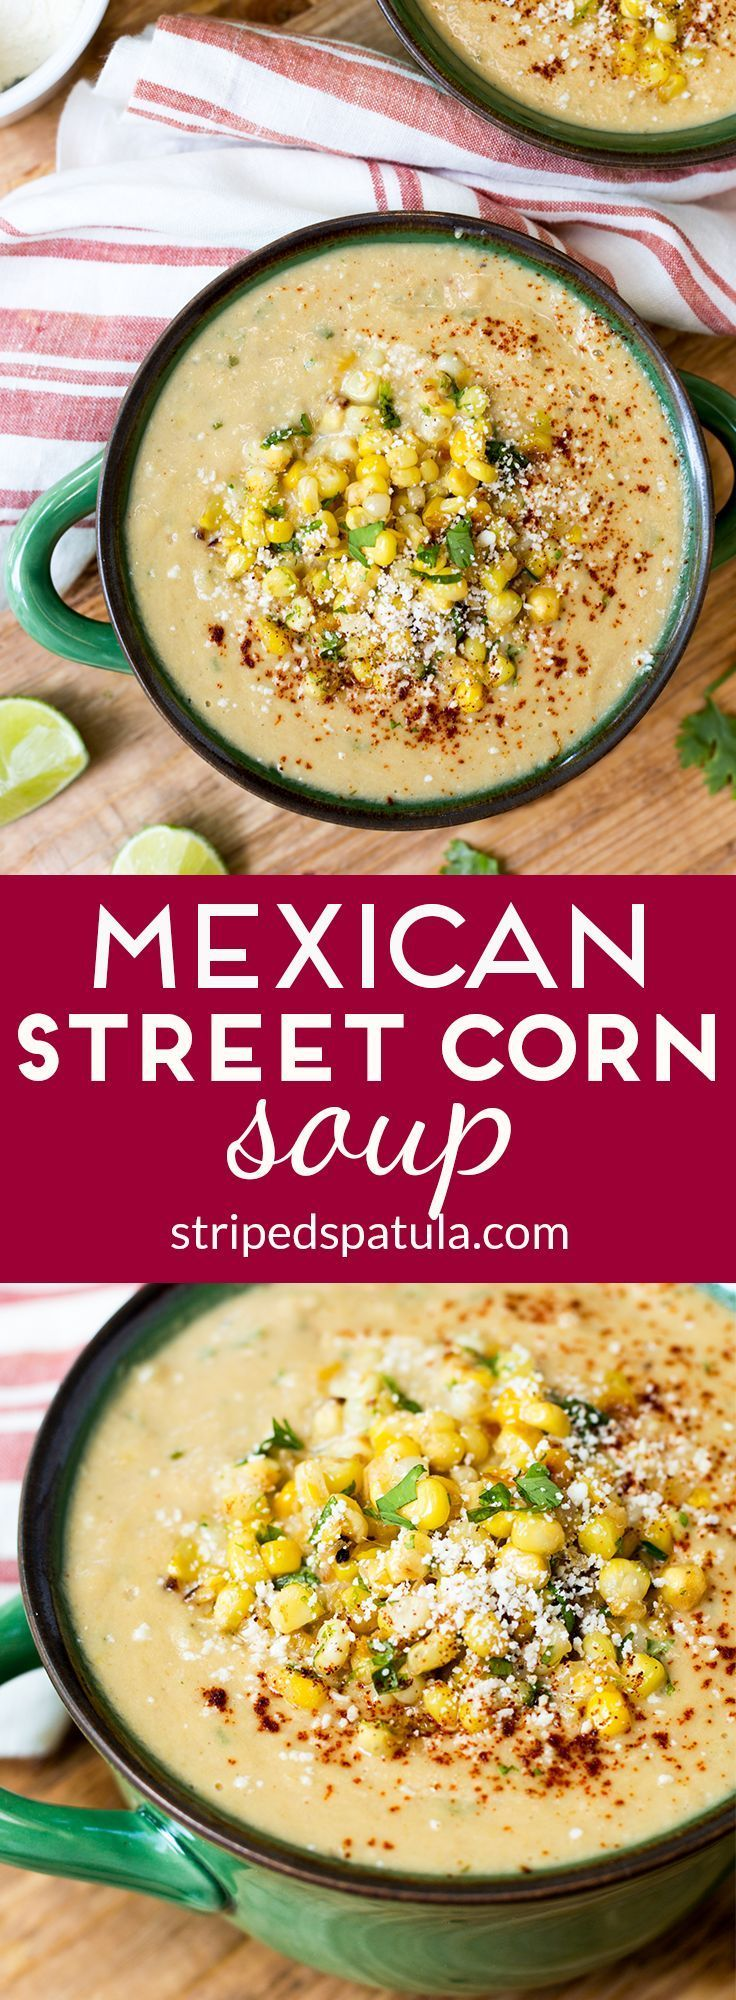 With Cotija cheese, cilantro, sour cream, and lime, Mexican Street Corn Soup is a fun and full-flavored way to serve sweet summer corn. It's easy to prepare, too!